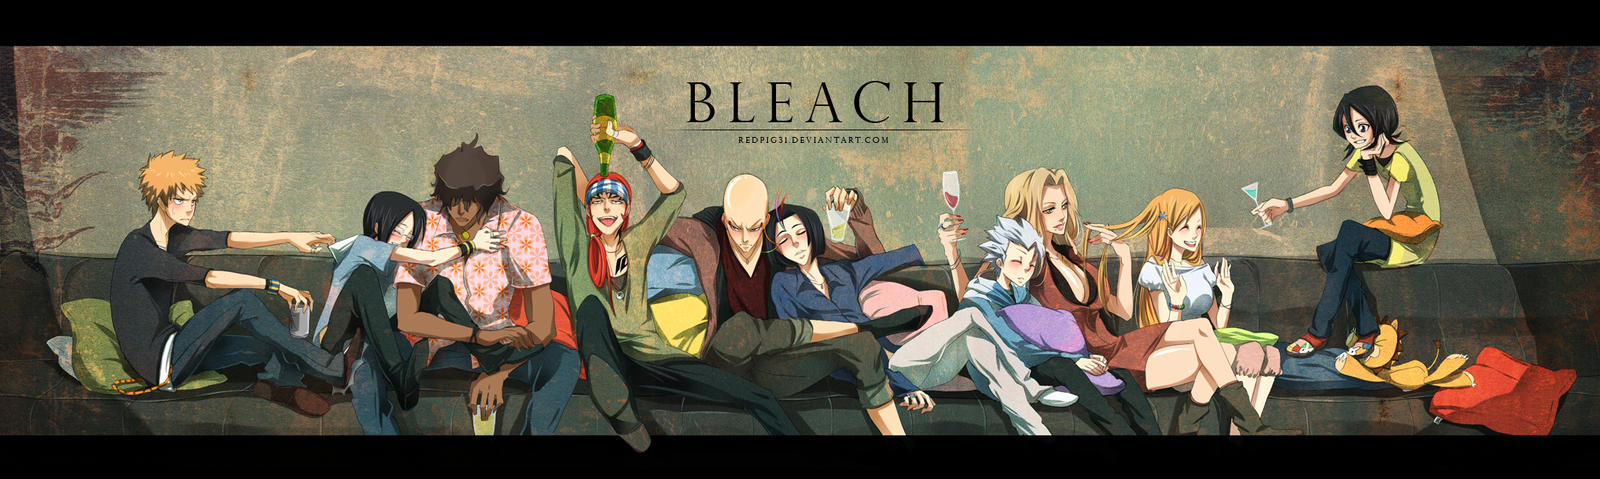 http://fc00.deviantart.net/fs71/i/2010/124/a/2/Bleach___Be_Drunk_by_RedPig31.jpg